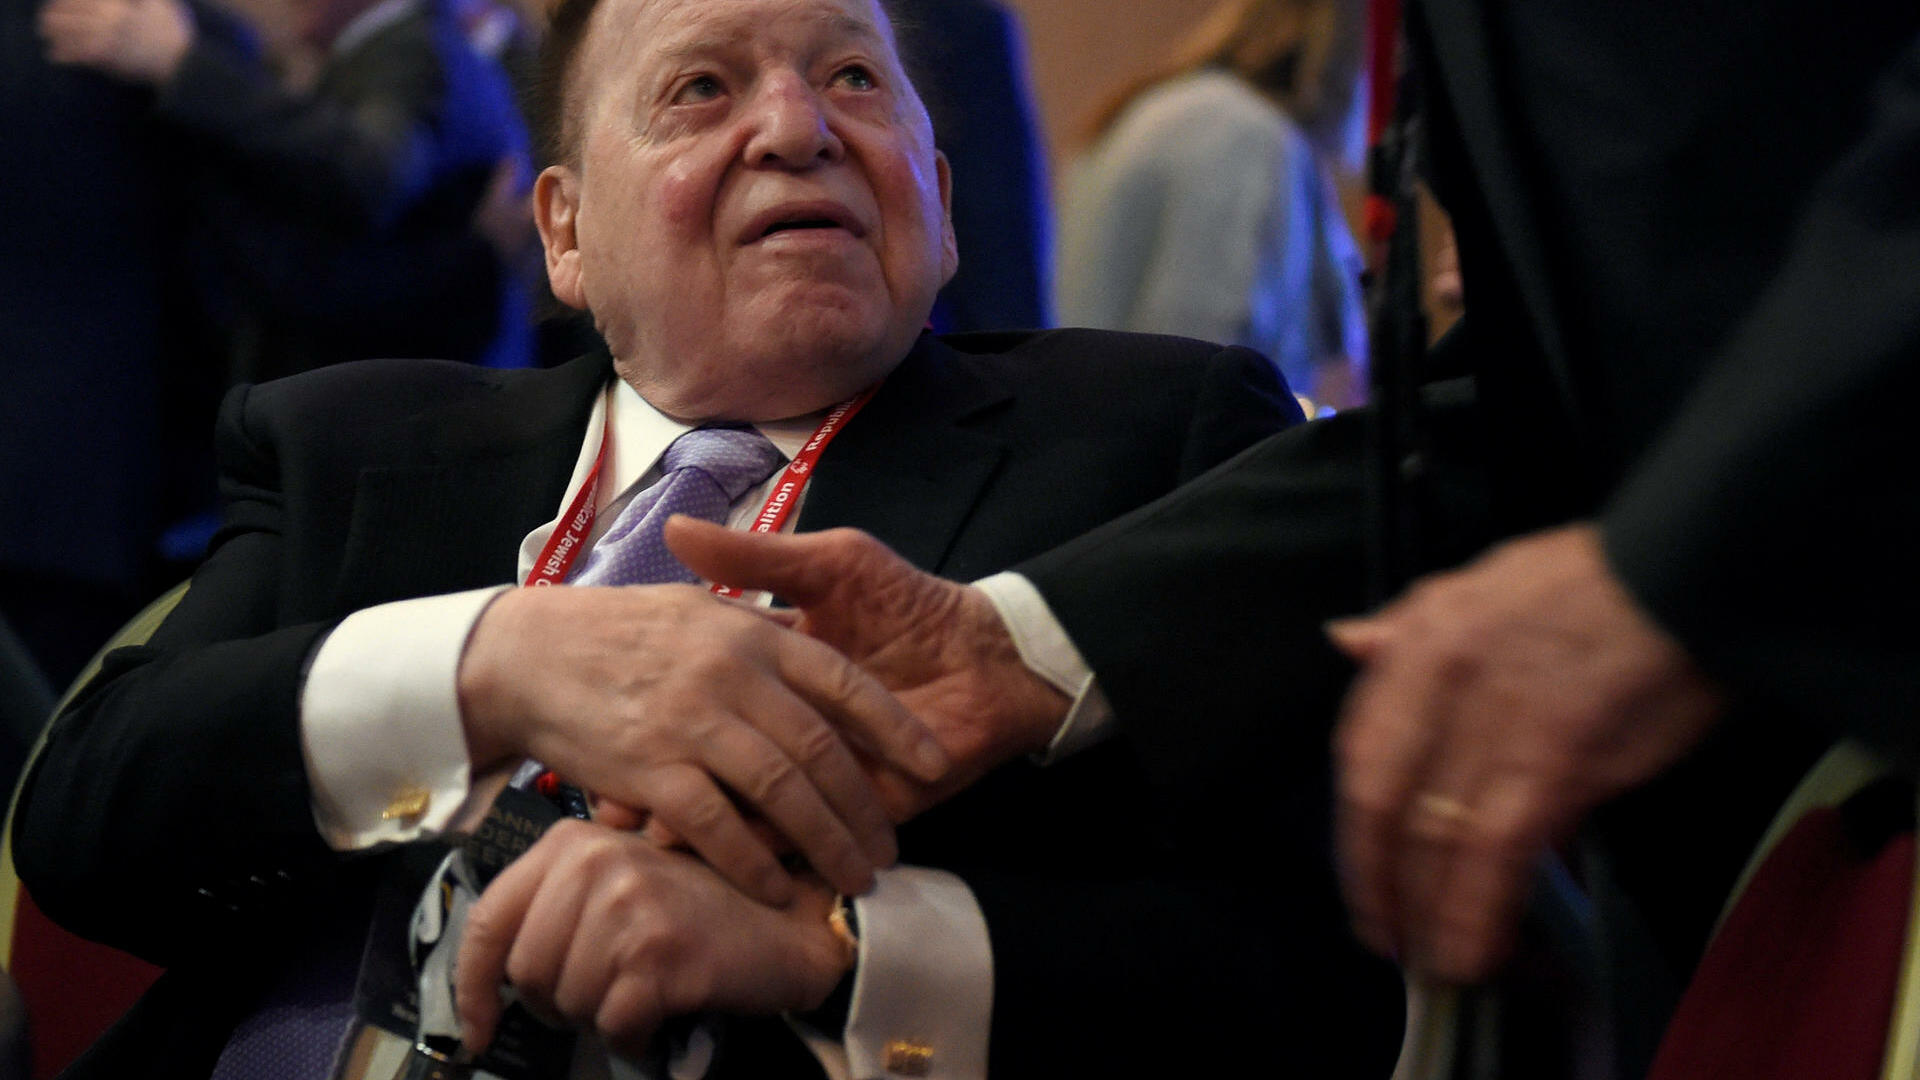 Sheldon Adelson Quelle: REUTERS